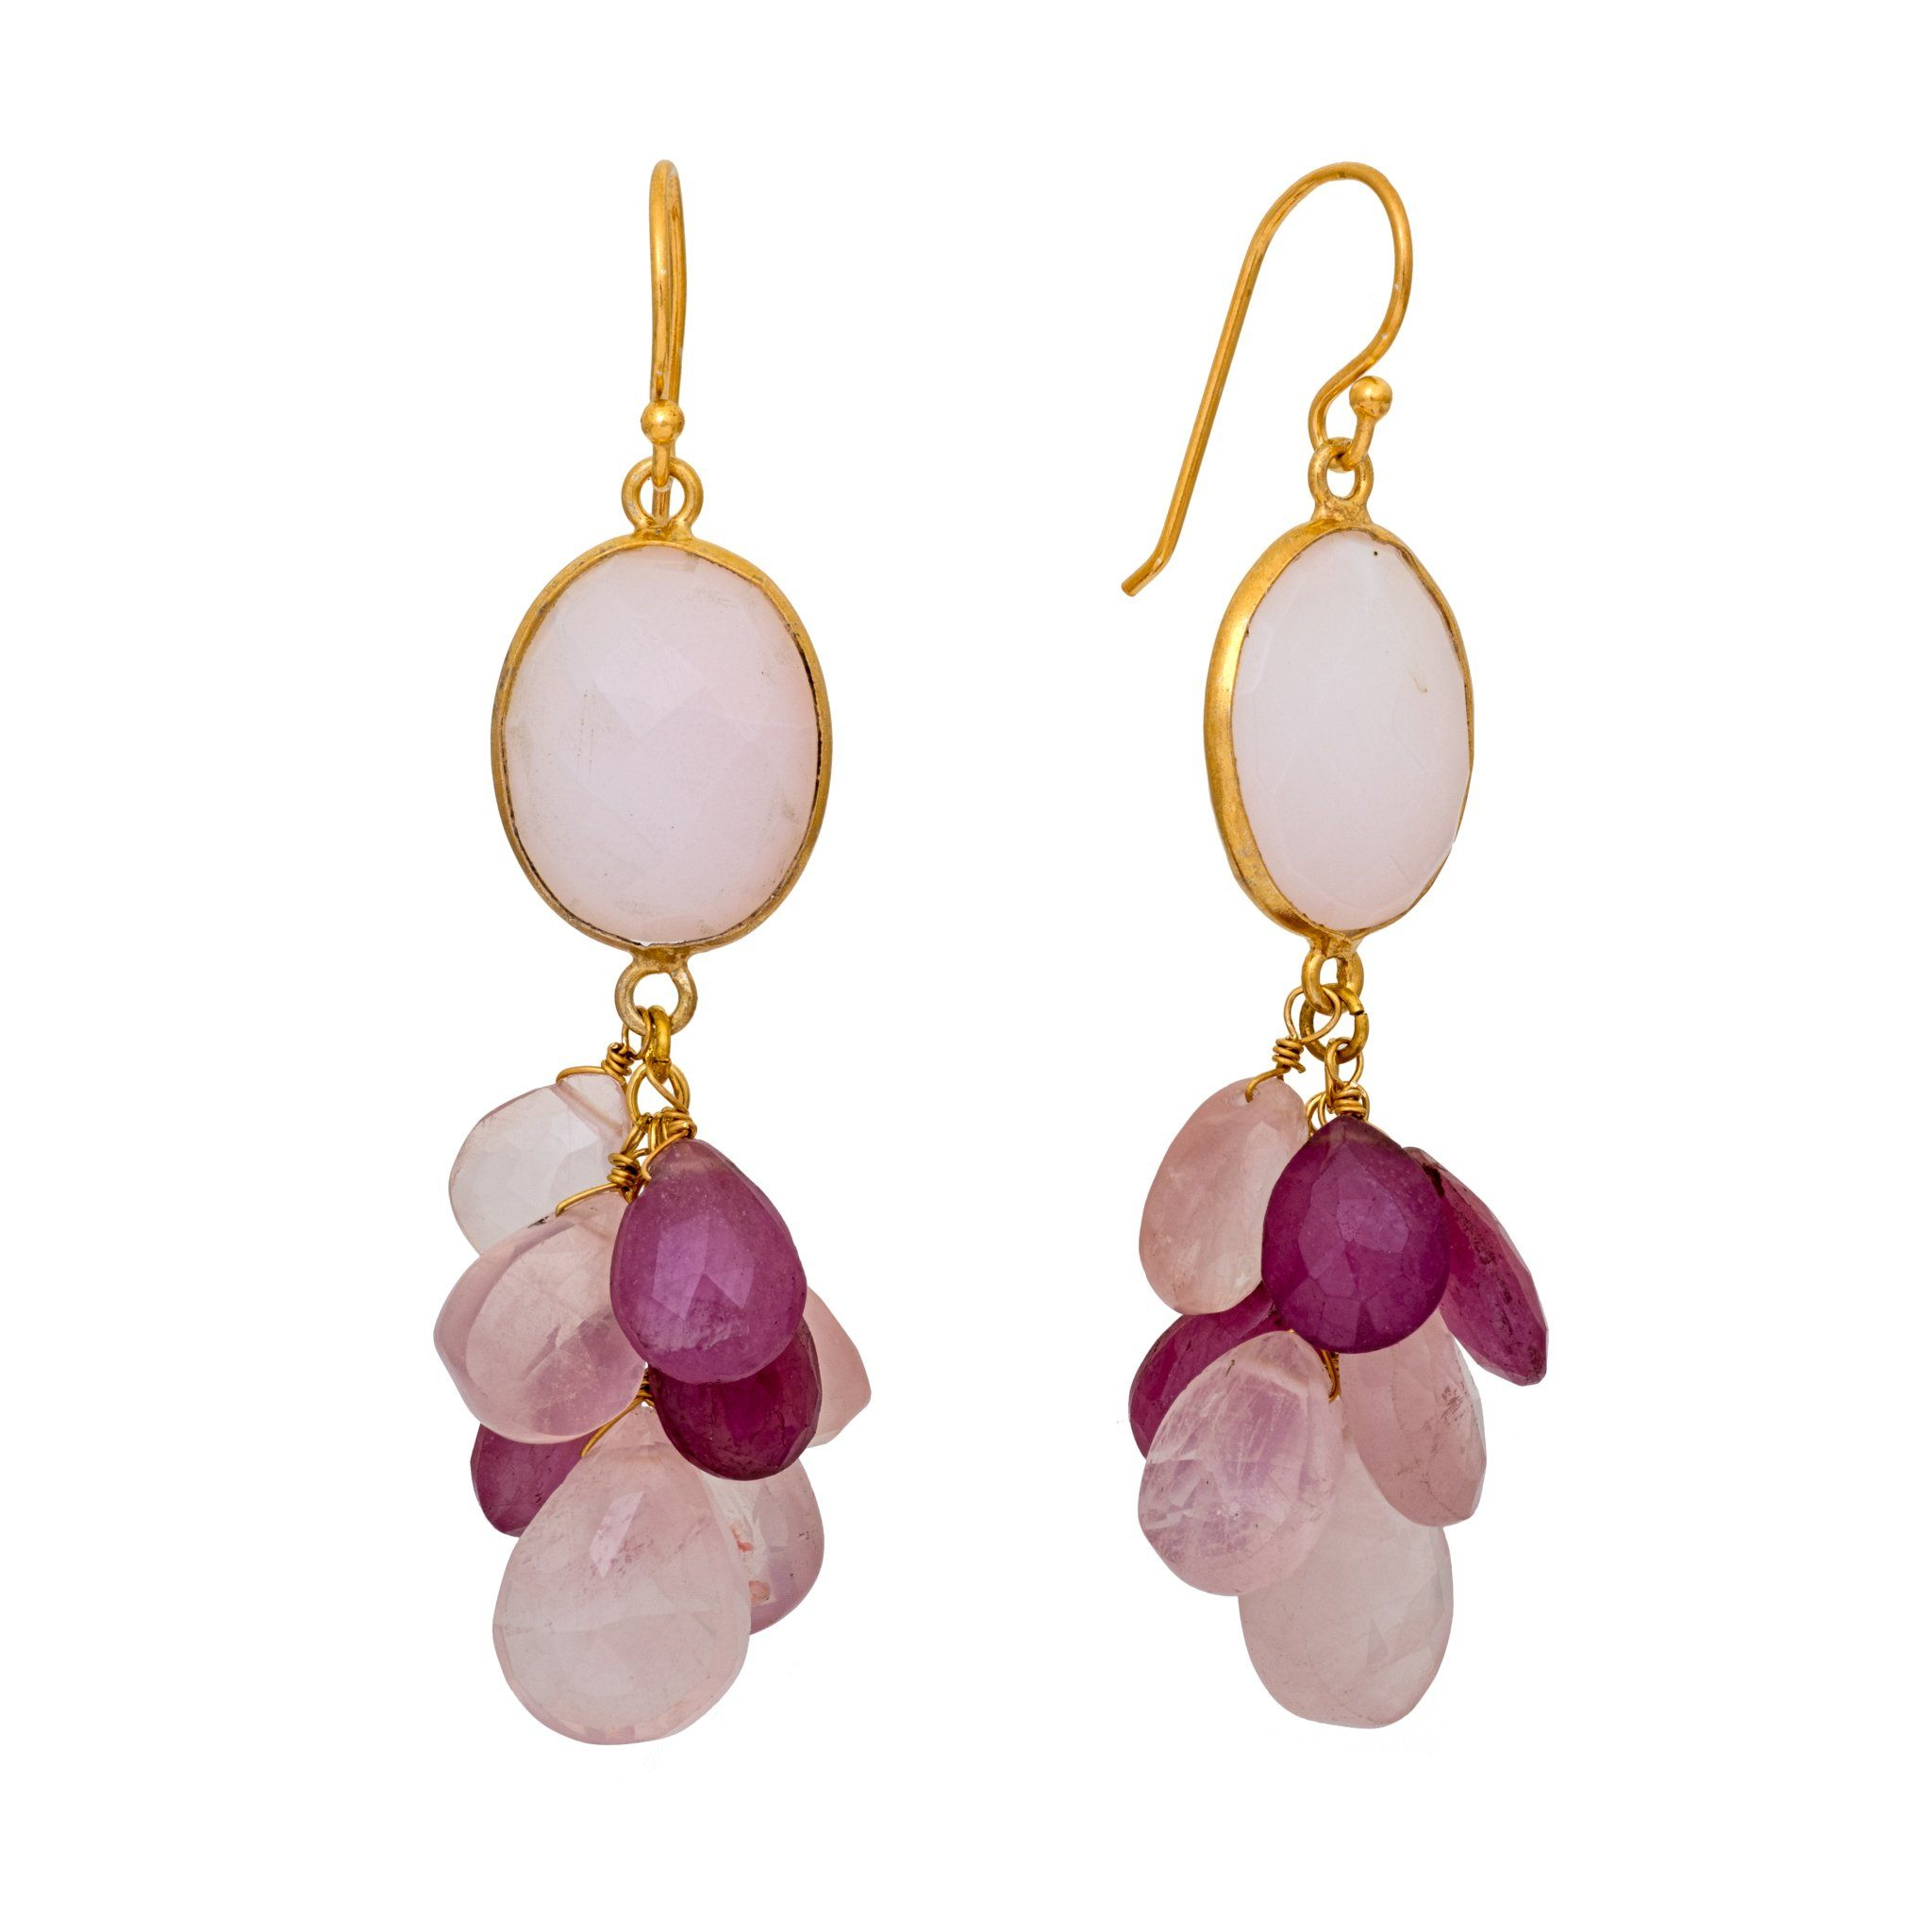 LUZ rose quartz cluster earrings - MadamSiam